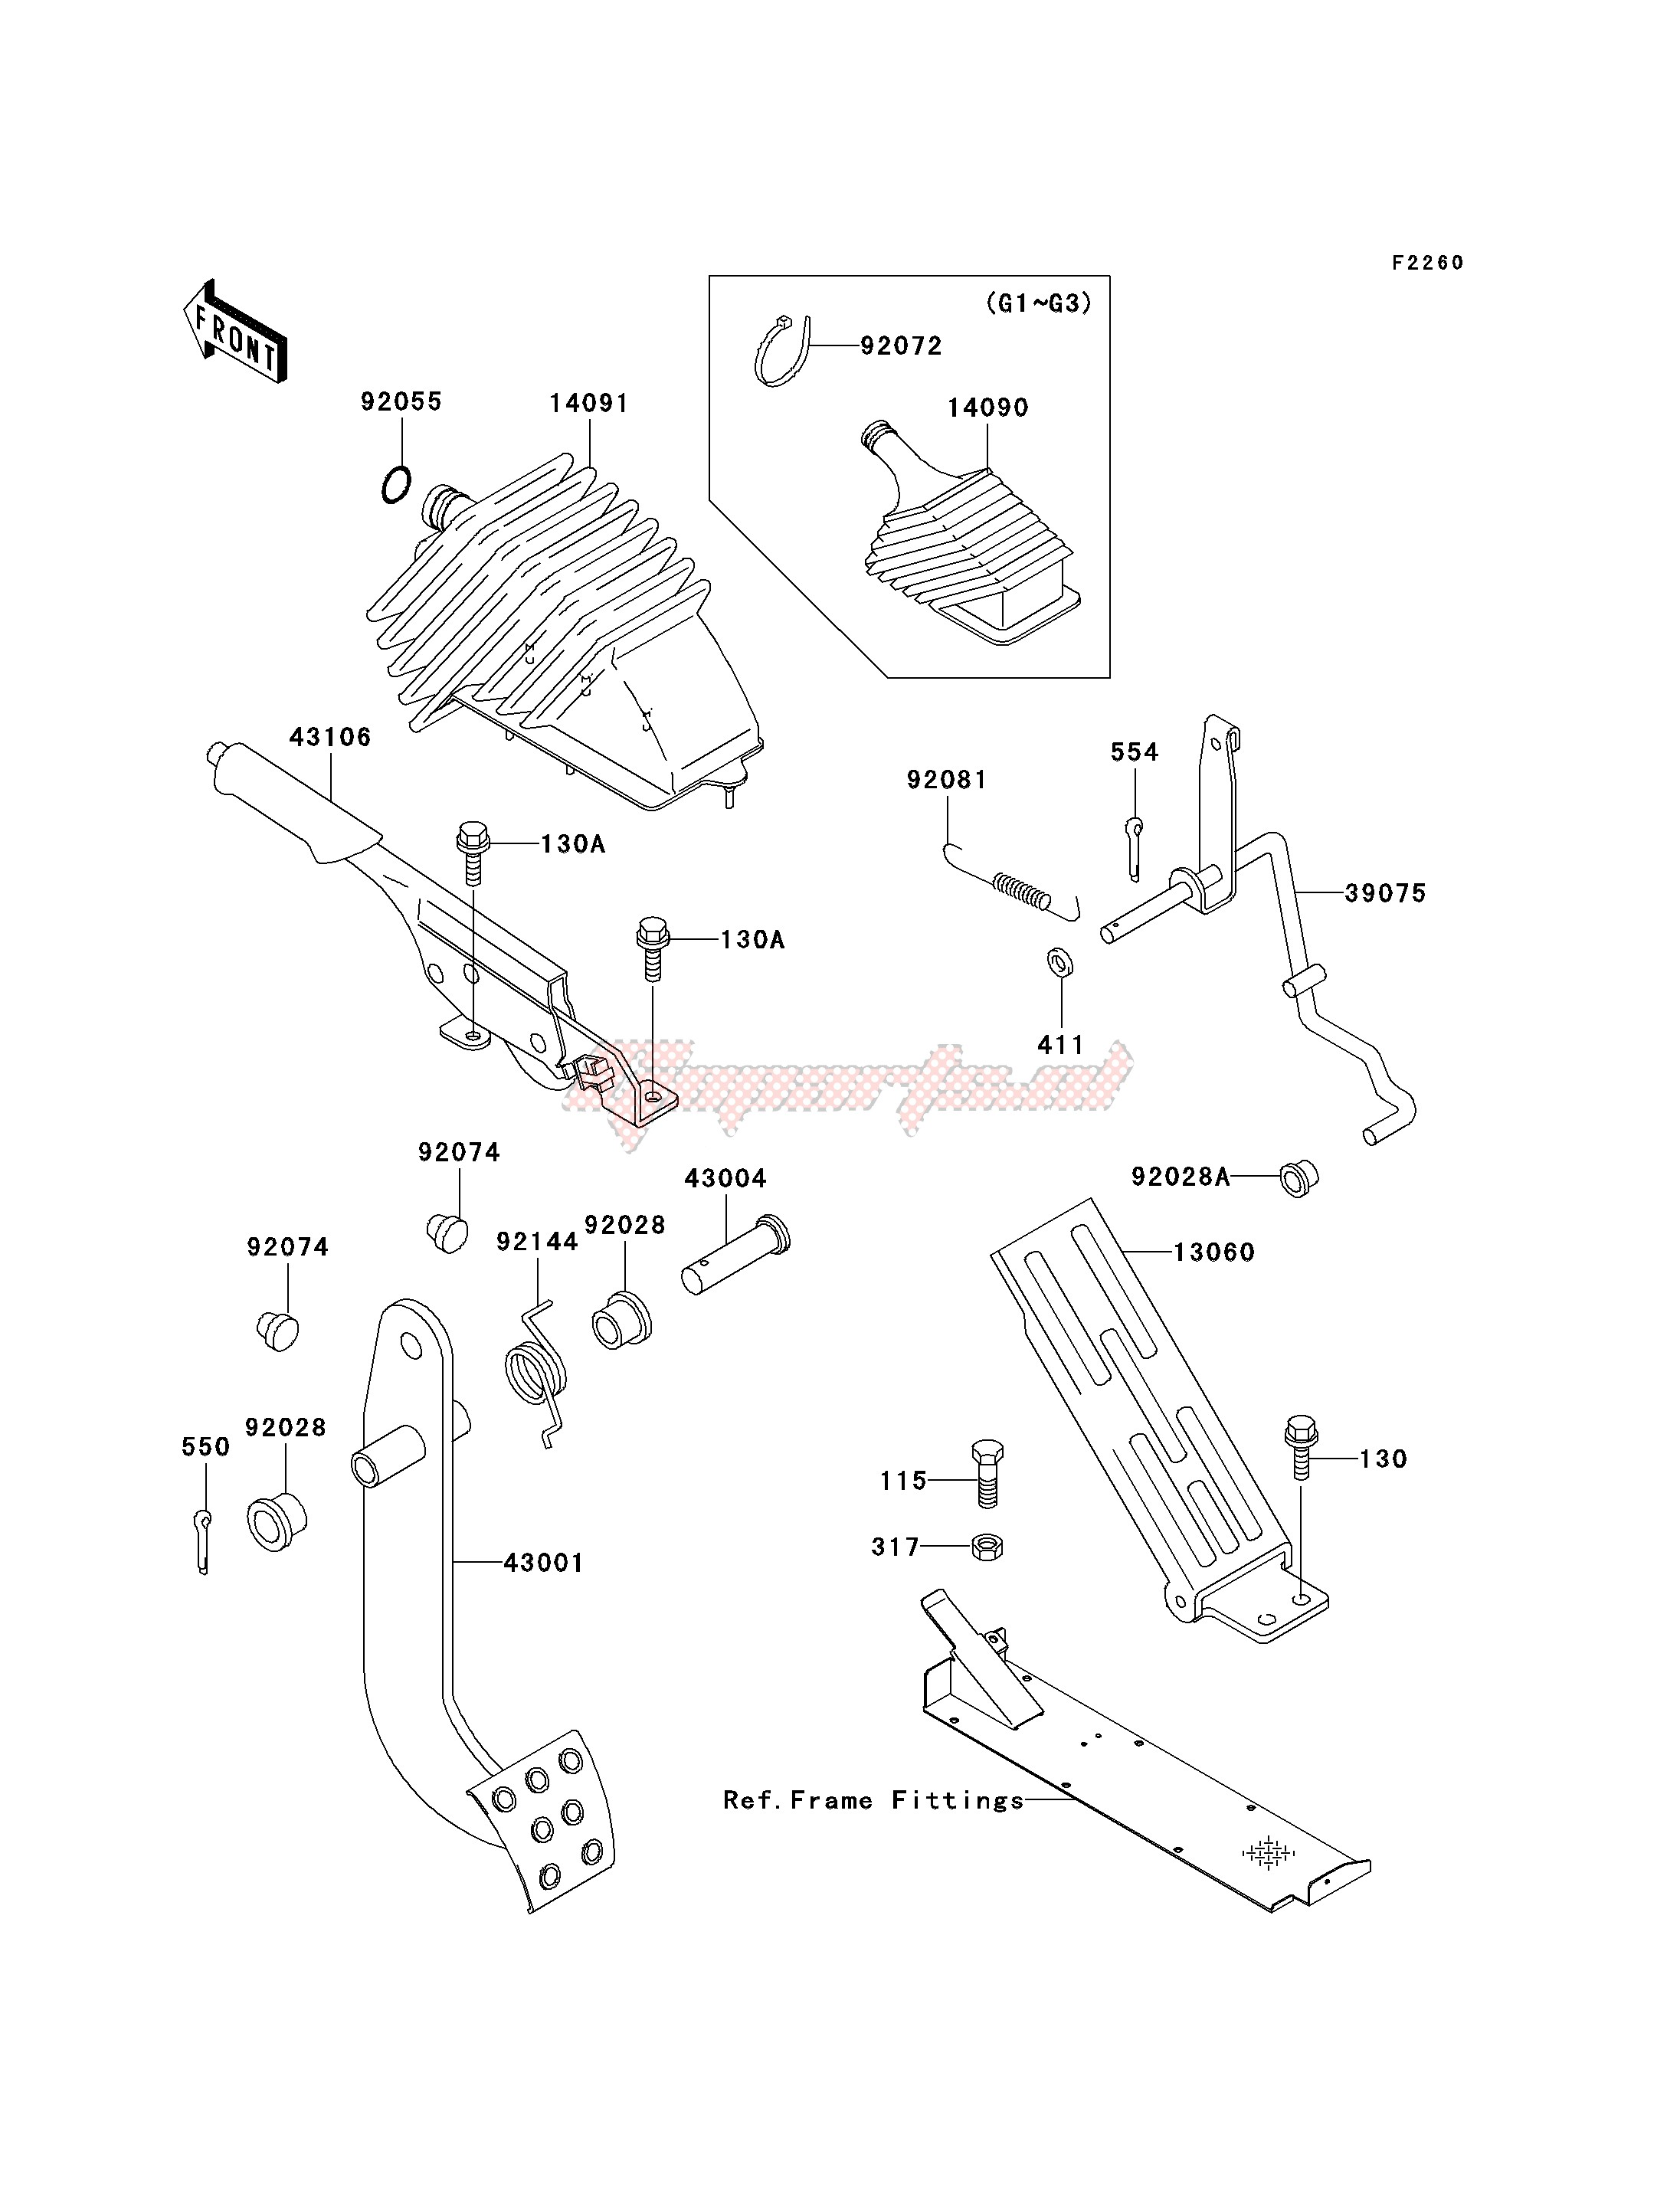 BRAKE PEDAL_THROTTLE LEVER image